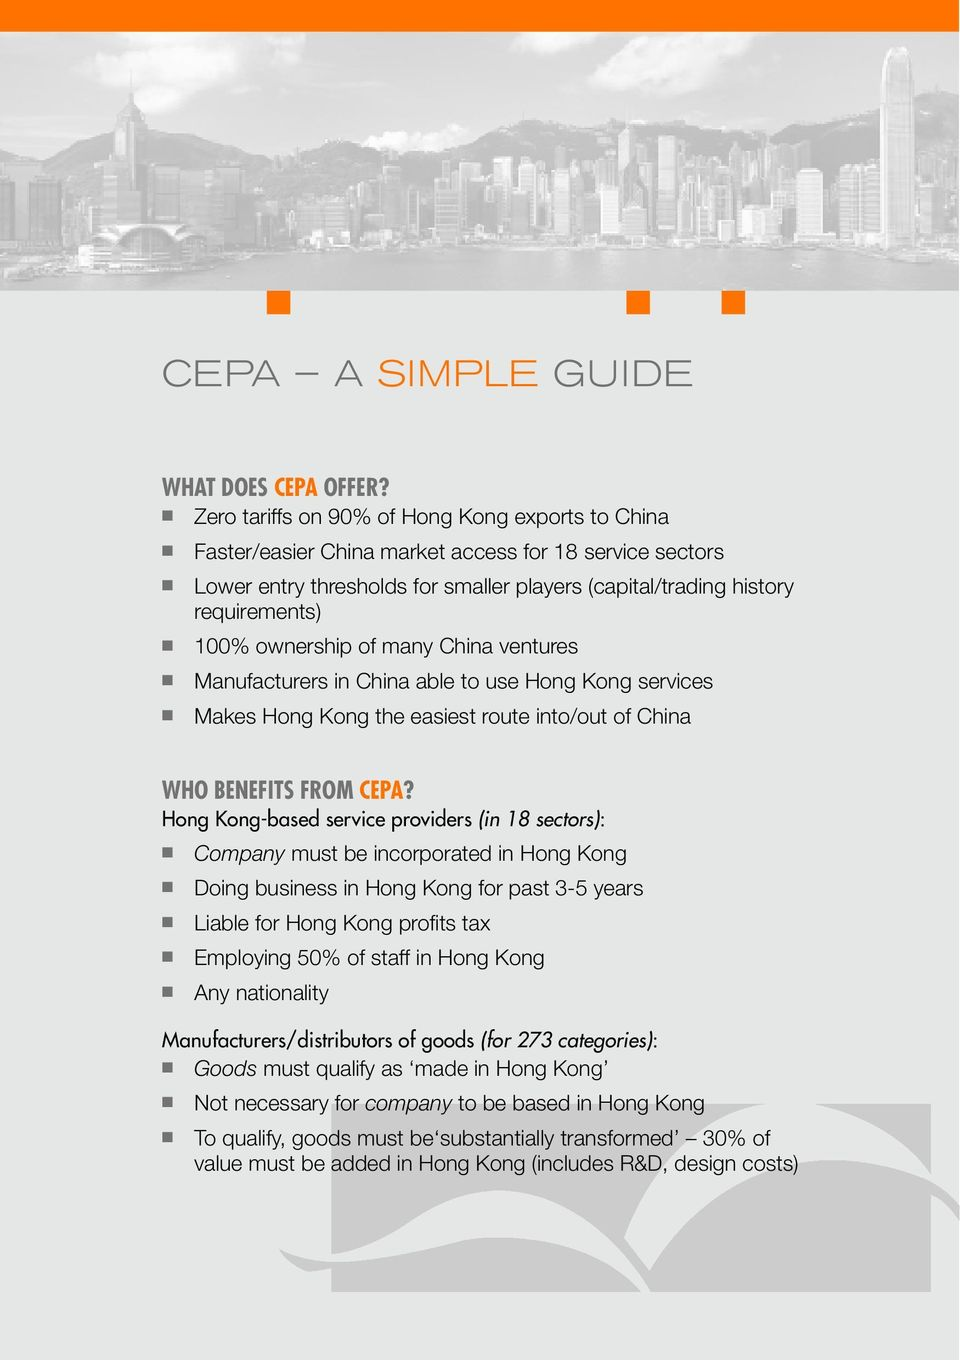 ownership of many China ventures Manufacturers in China able to use Hong Kong services Makes Hong Kong the easiest route into/out of China WHO BENEFITS FROM CEPA?